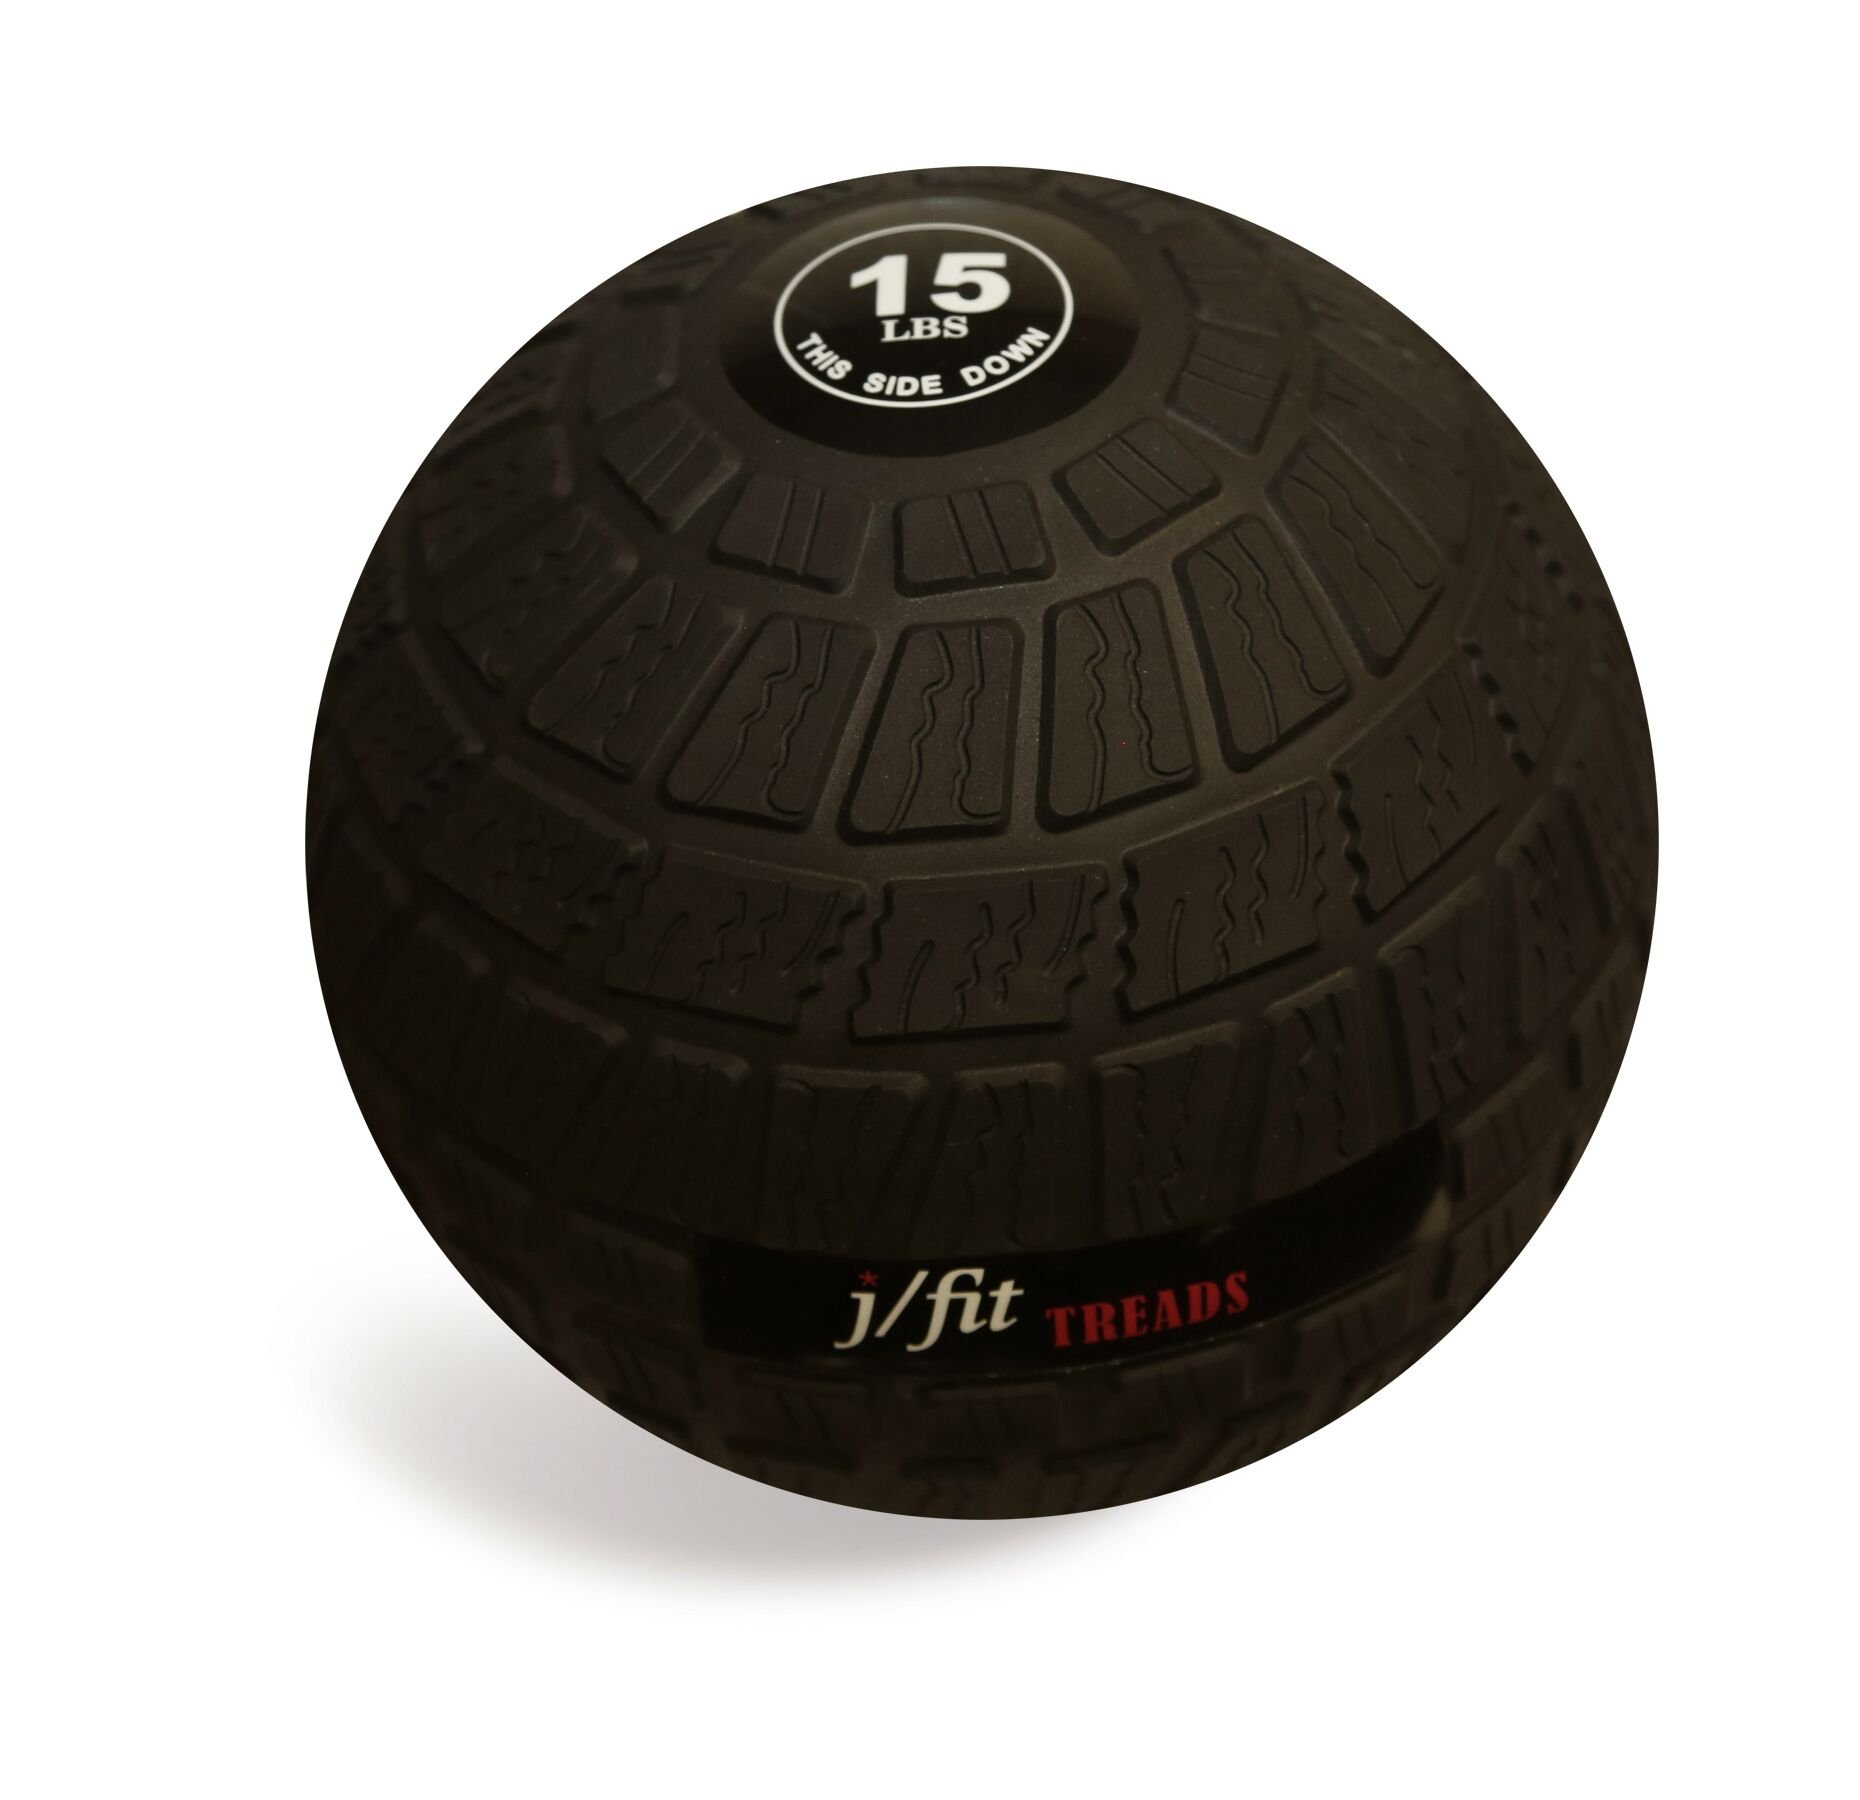 j/fit Dead Weight Slam Ball – Classic or Treads Option, Strength & Conditioning Cross Training WODs, Plyometric & Core Training, Squats, Lunges, Wall Exercises (10, 15, 20, 25, 30, 35, 40, 45 & 50lbs)